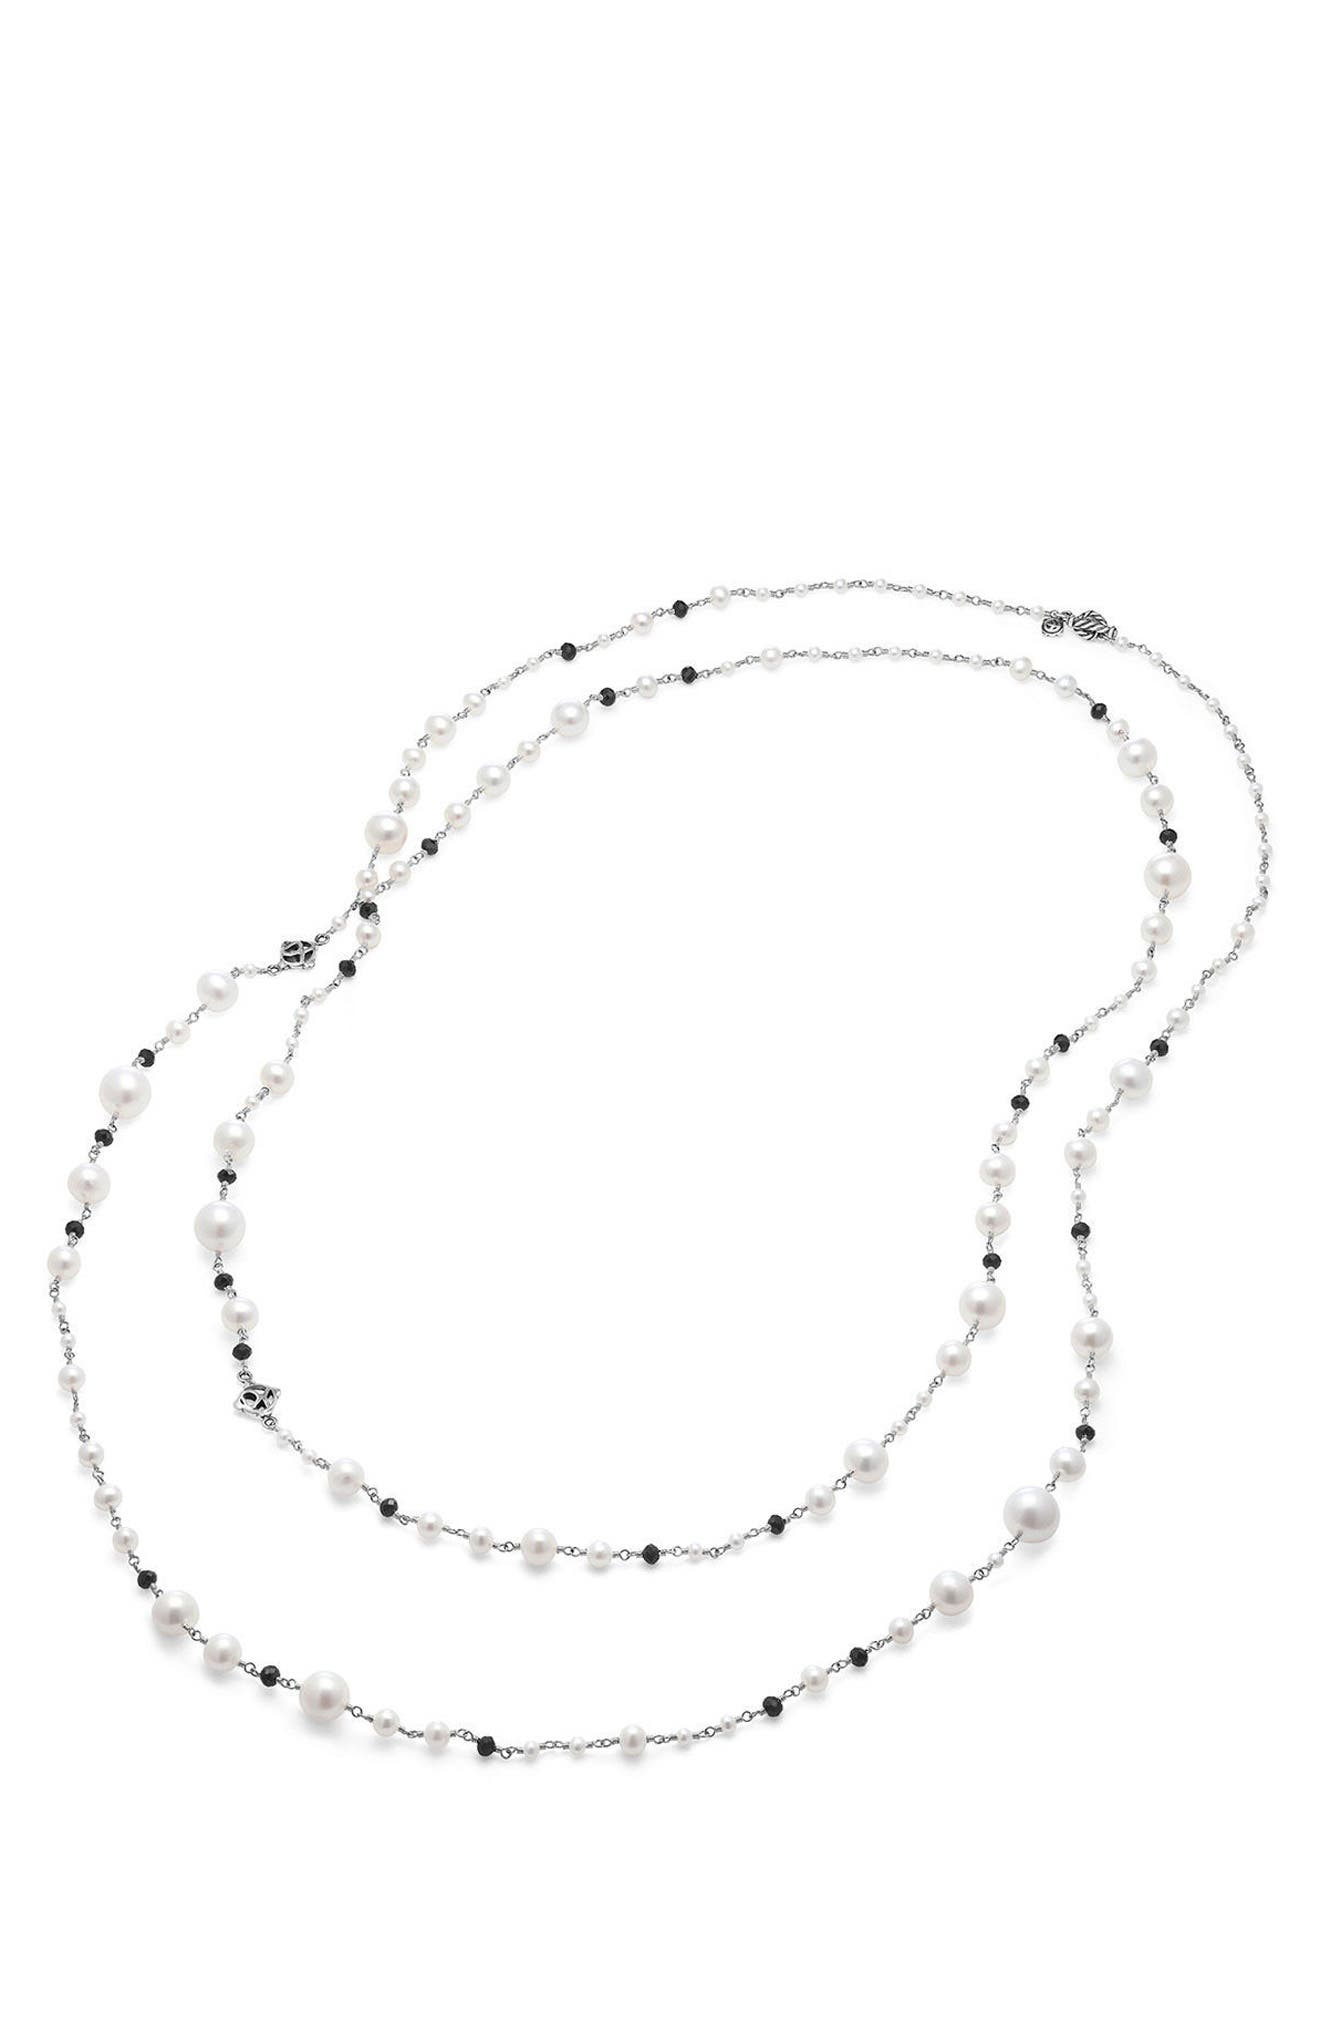 Solari Pearl & Bead Necklace,                             Alternate thumbnail 2, color,                             PEARL/ BLACK SPINEL